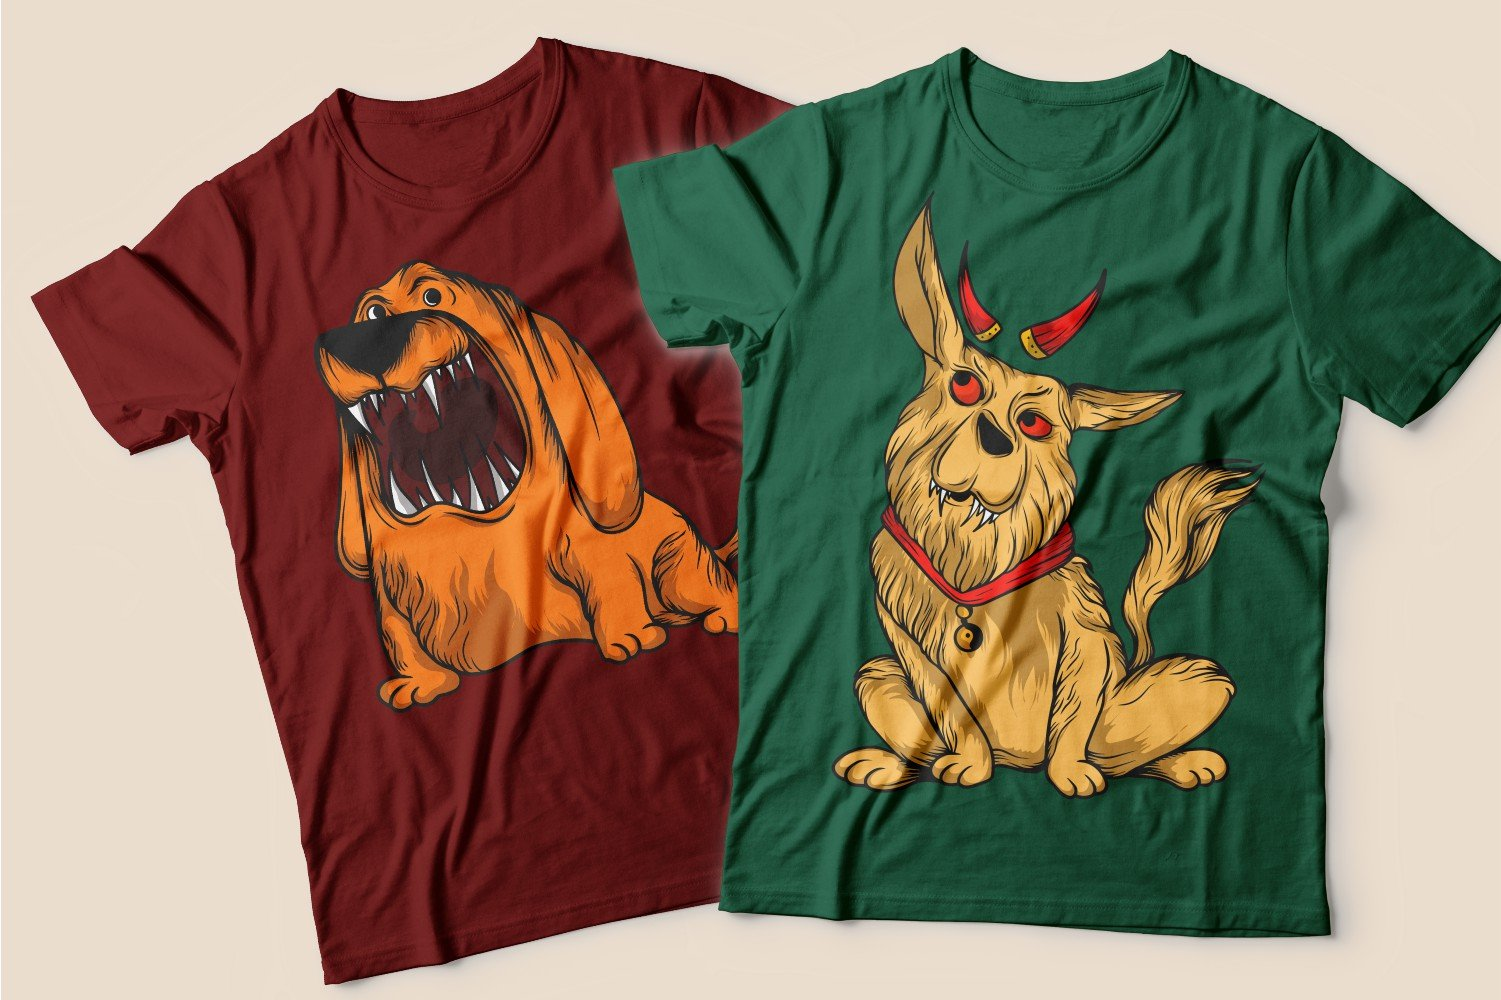 Two T-shirts: burgundy with a red long-eared dog and green with a curious beige dog with horns.